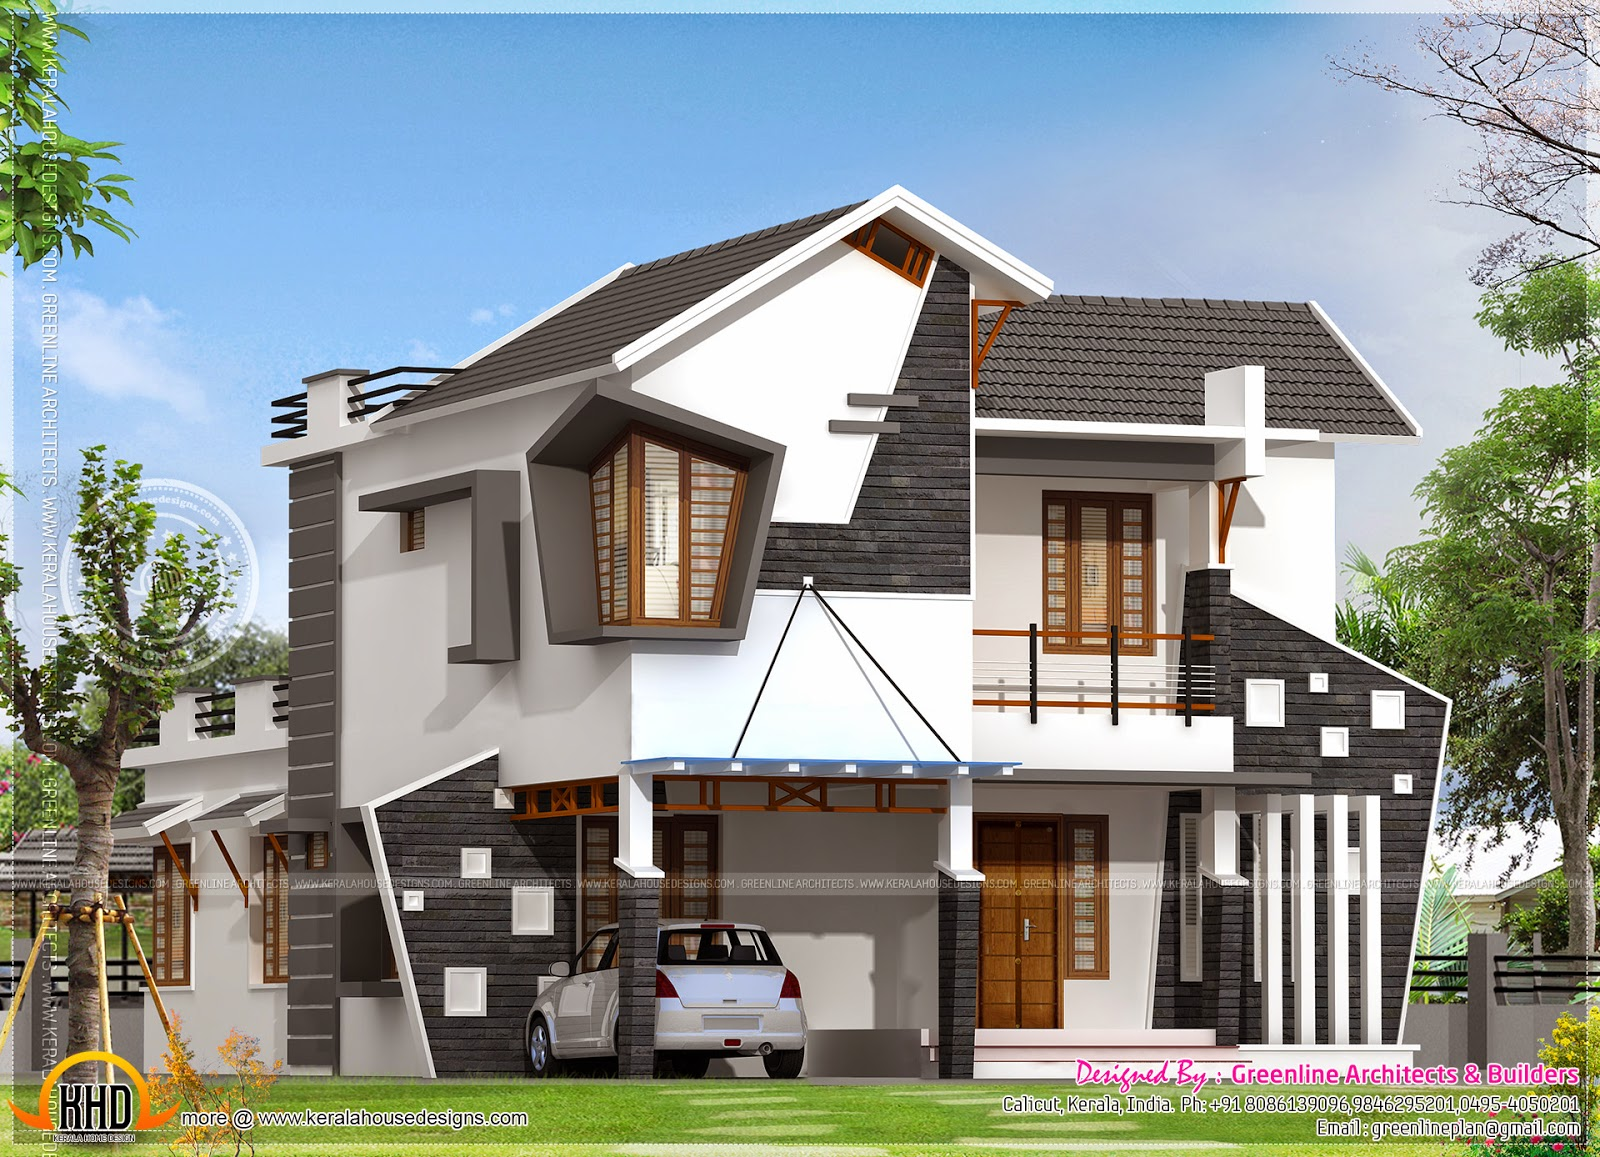 unique house exterior in 2154 square feet kerala home design and floor plans. Black Bedroom Furniture Sets. Home Design Ideas